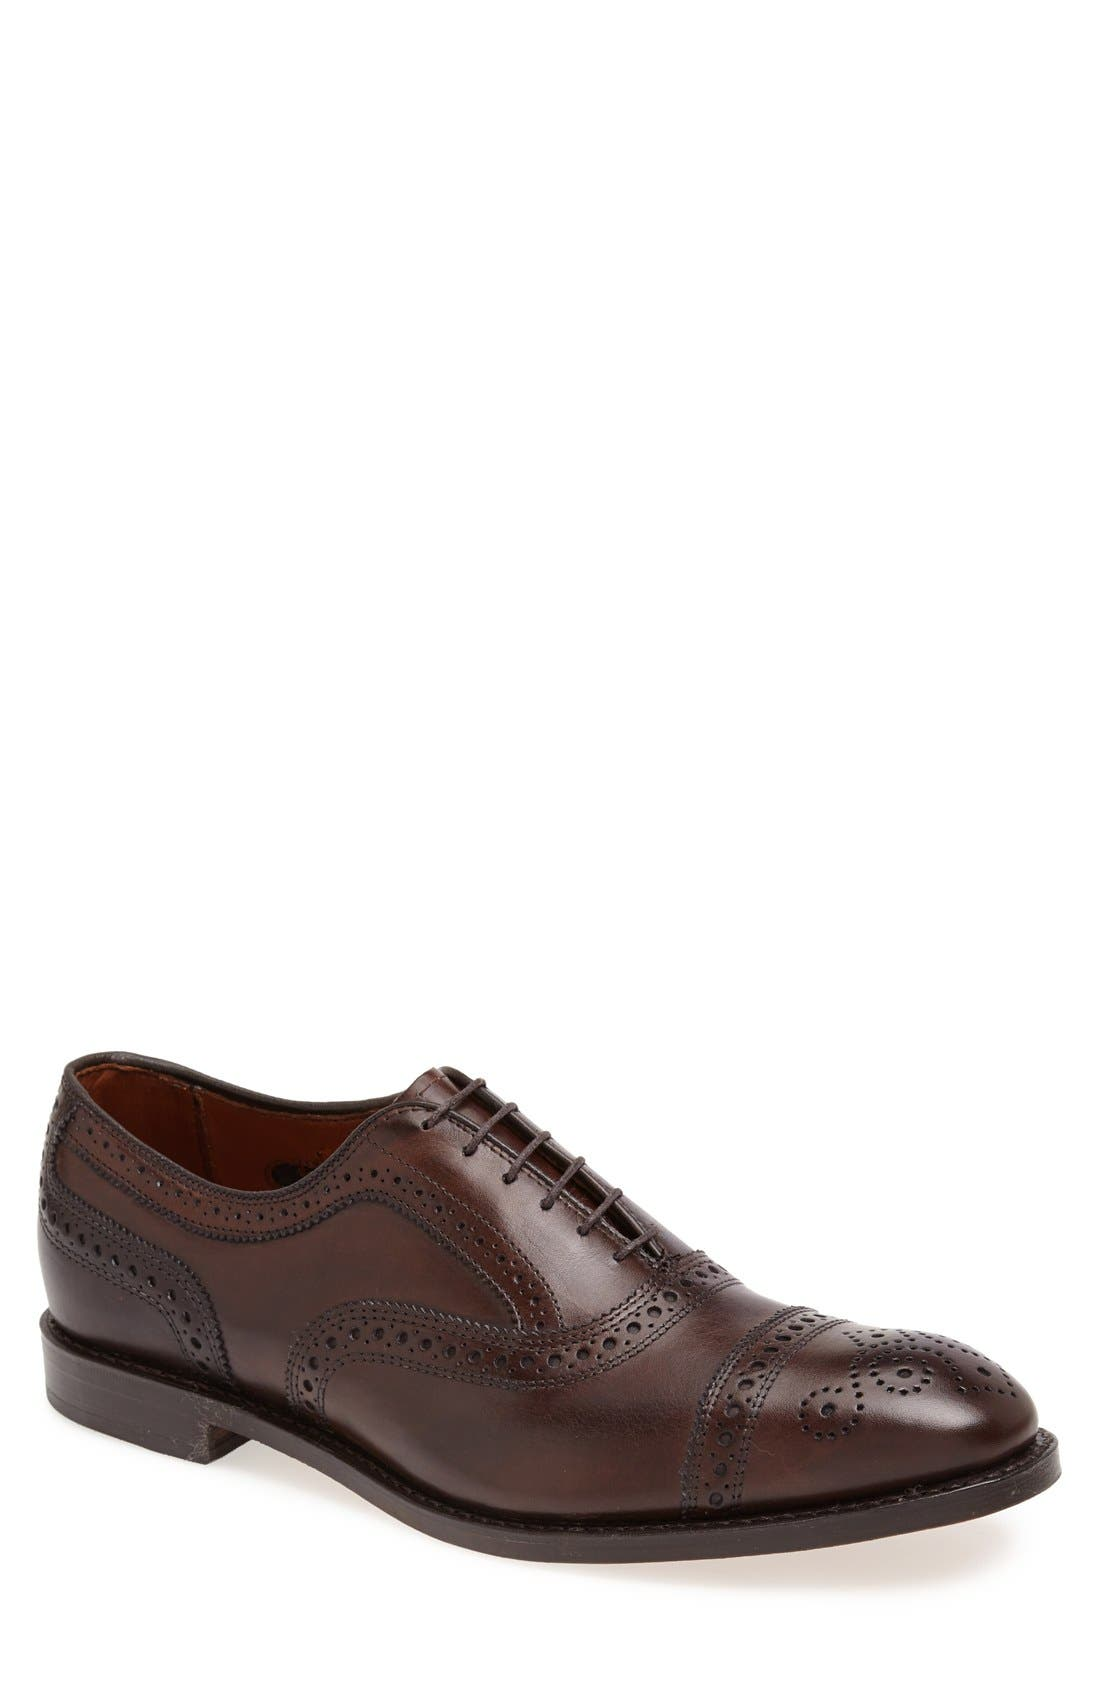 'Strand' Cap Toe Oxford,                             Main thumbnail 1, color,                             BROWN BURNISHED CALF